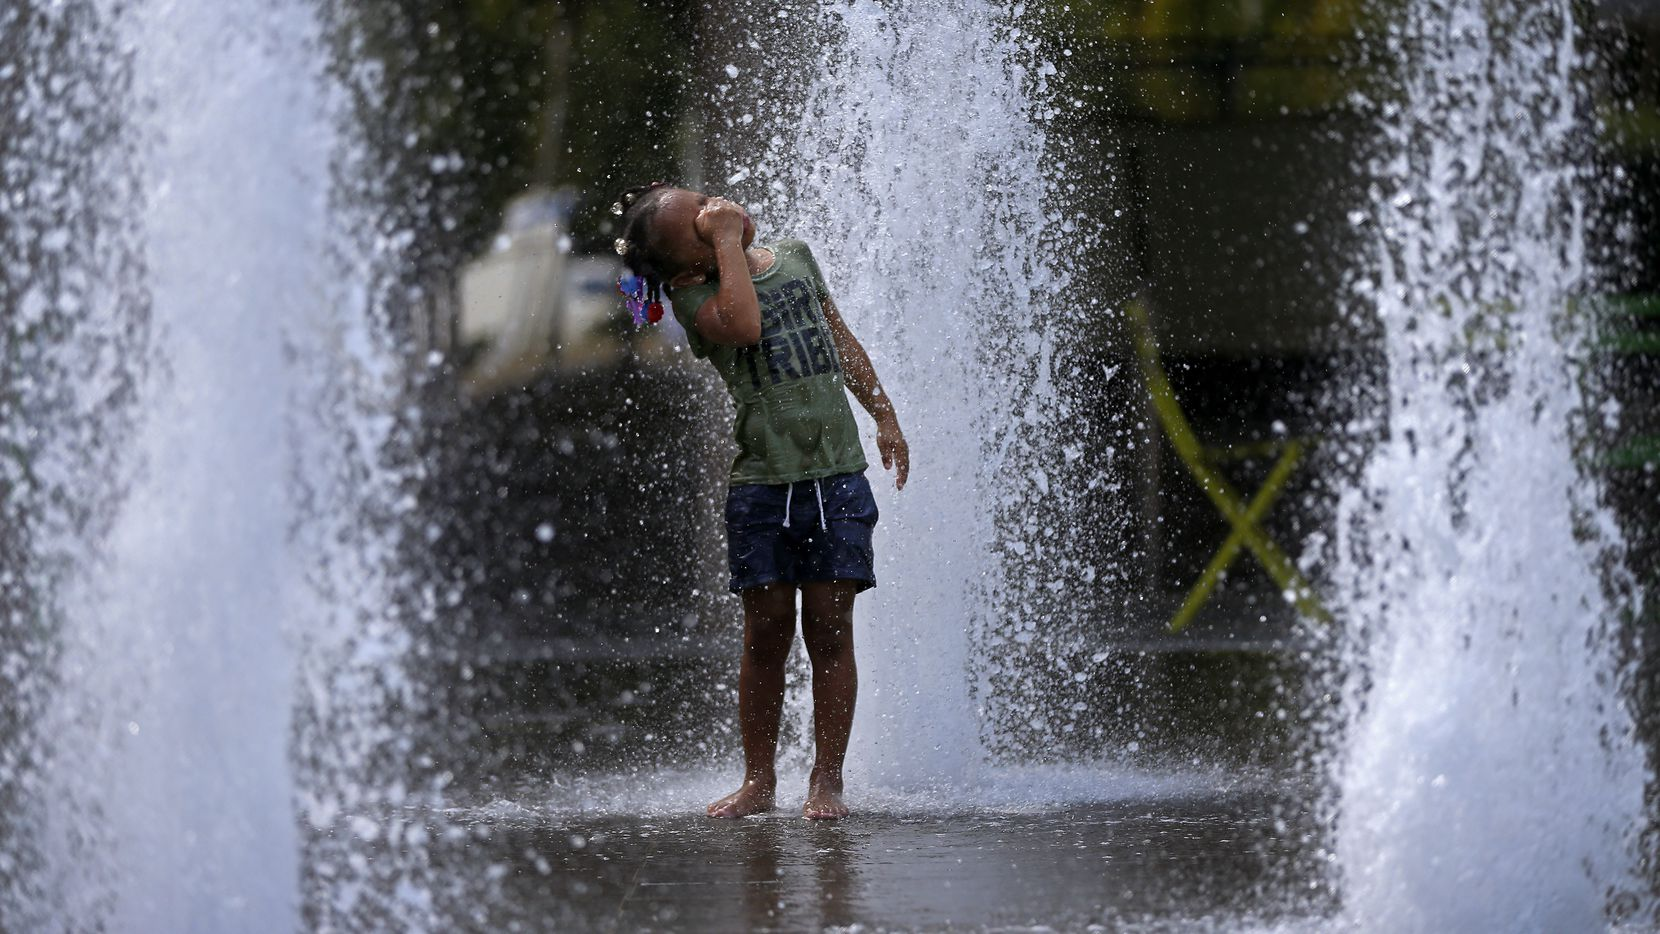 Rhmyeiah Parrish, 5, cooled off in the fountain at Klyde Warren Park in Dallas on July 19 when the temperature in Dallas-Fort Worth hit a record high 108.